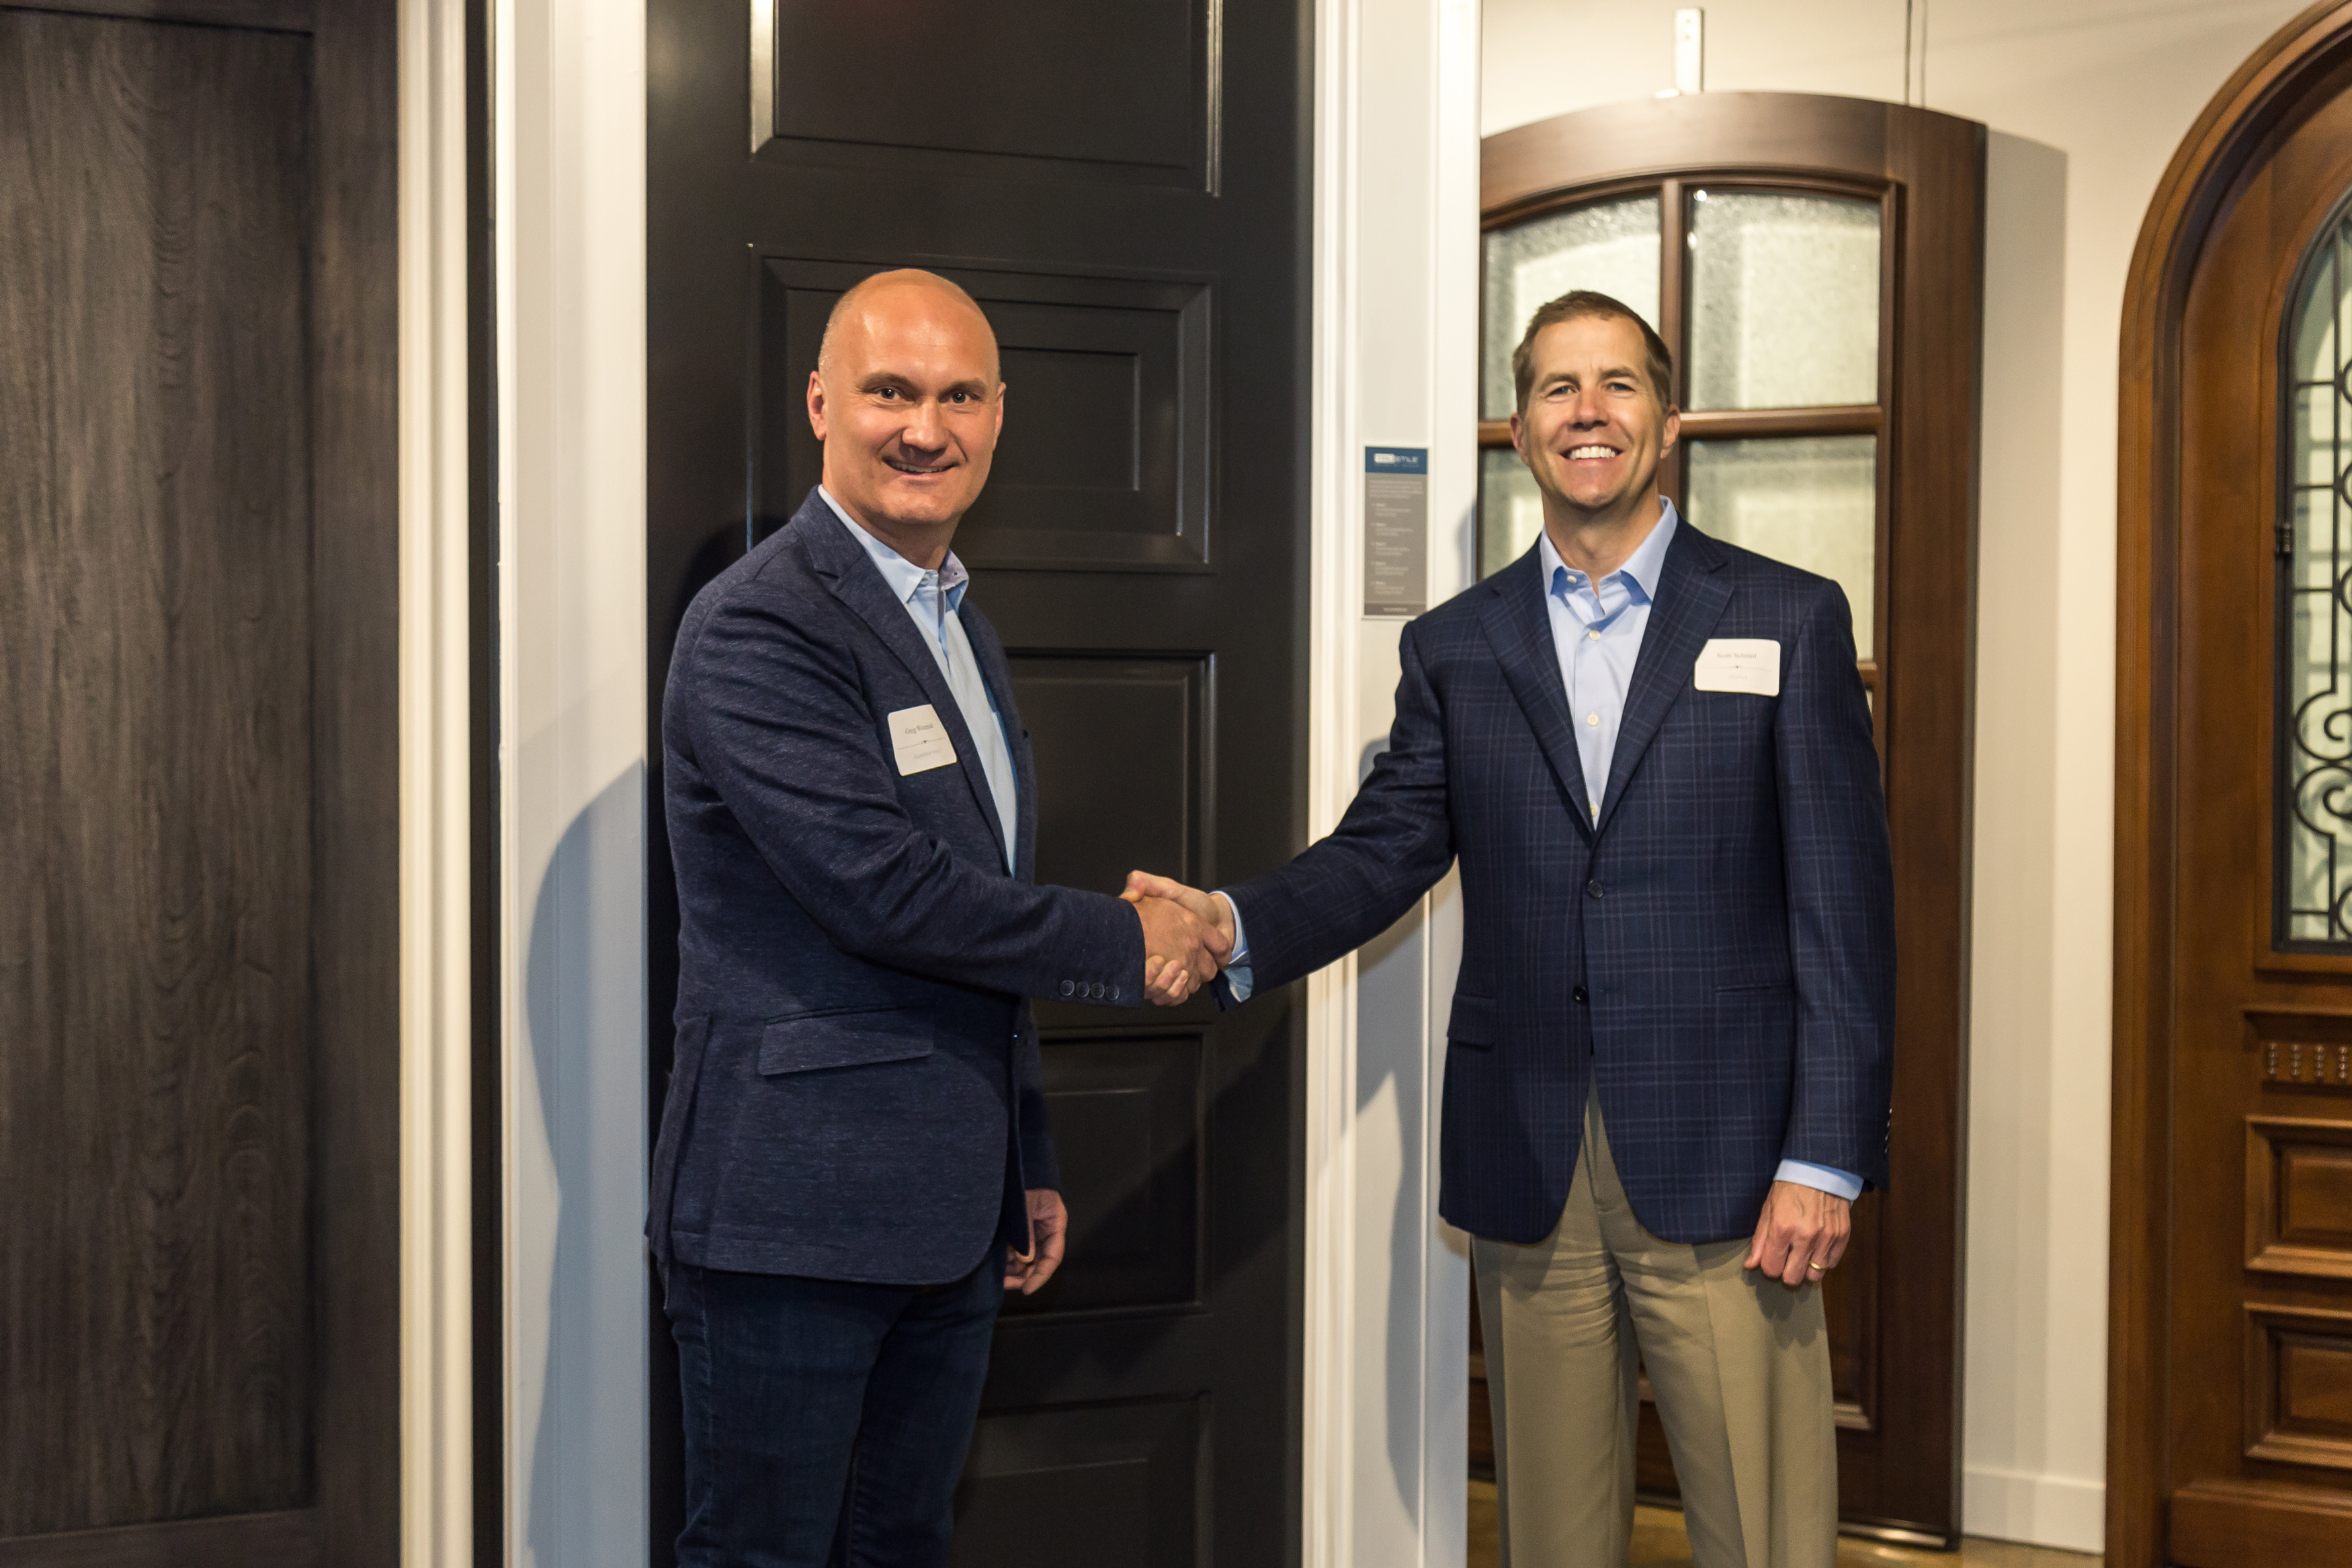 Exterior: Glenview Haus Hosts TruStile CEO To Educate Architects And